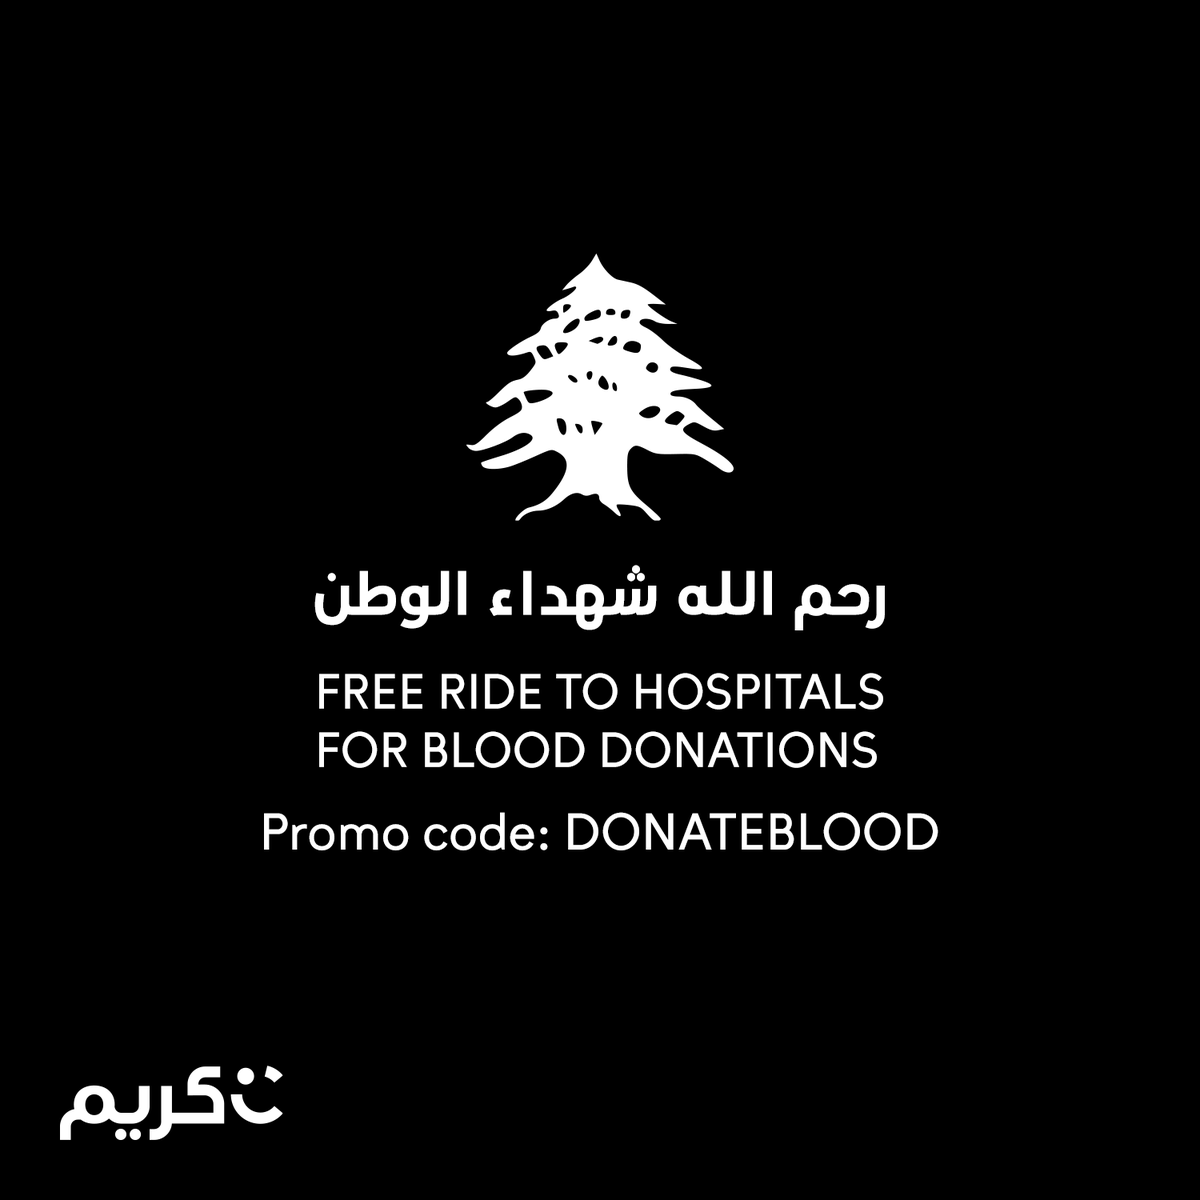 URGENT All blood types needed in all hospitals and blood donation centers in Beirut. Use promocode DONATEBLOOD for a free ride to and from the hospital or the blood donations center. https://t.co/eDsWg8m0hs